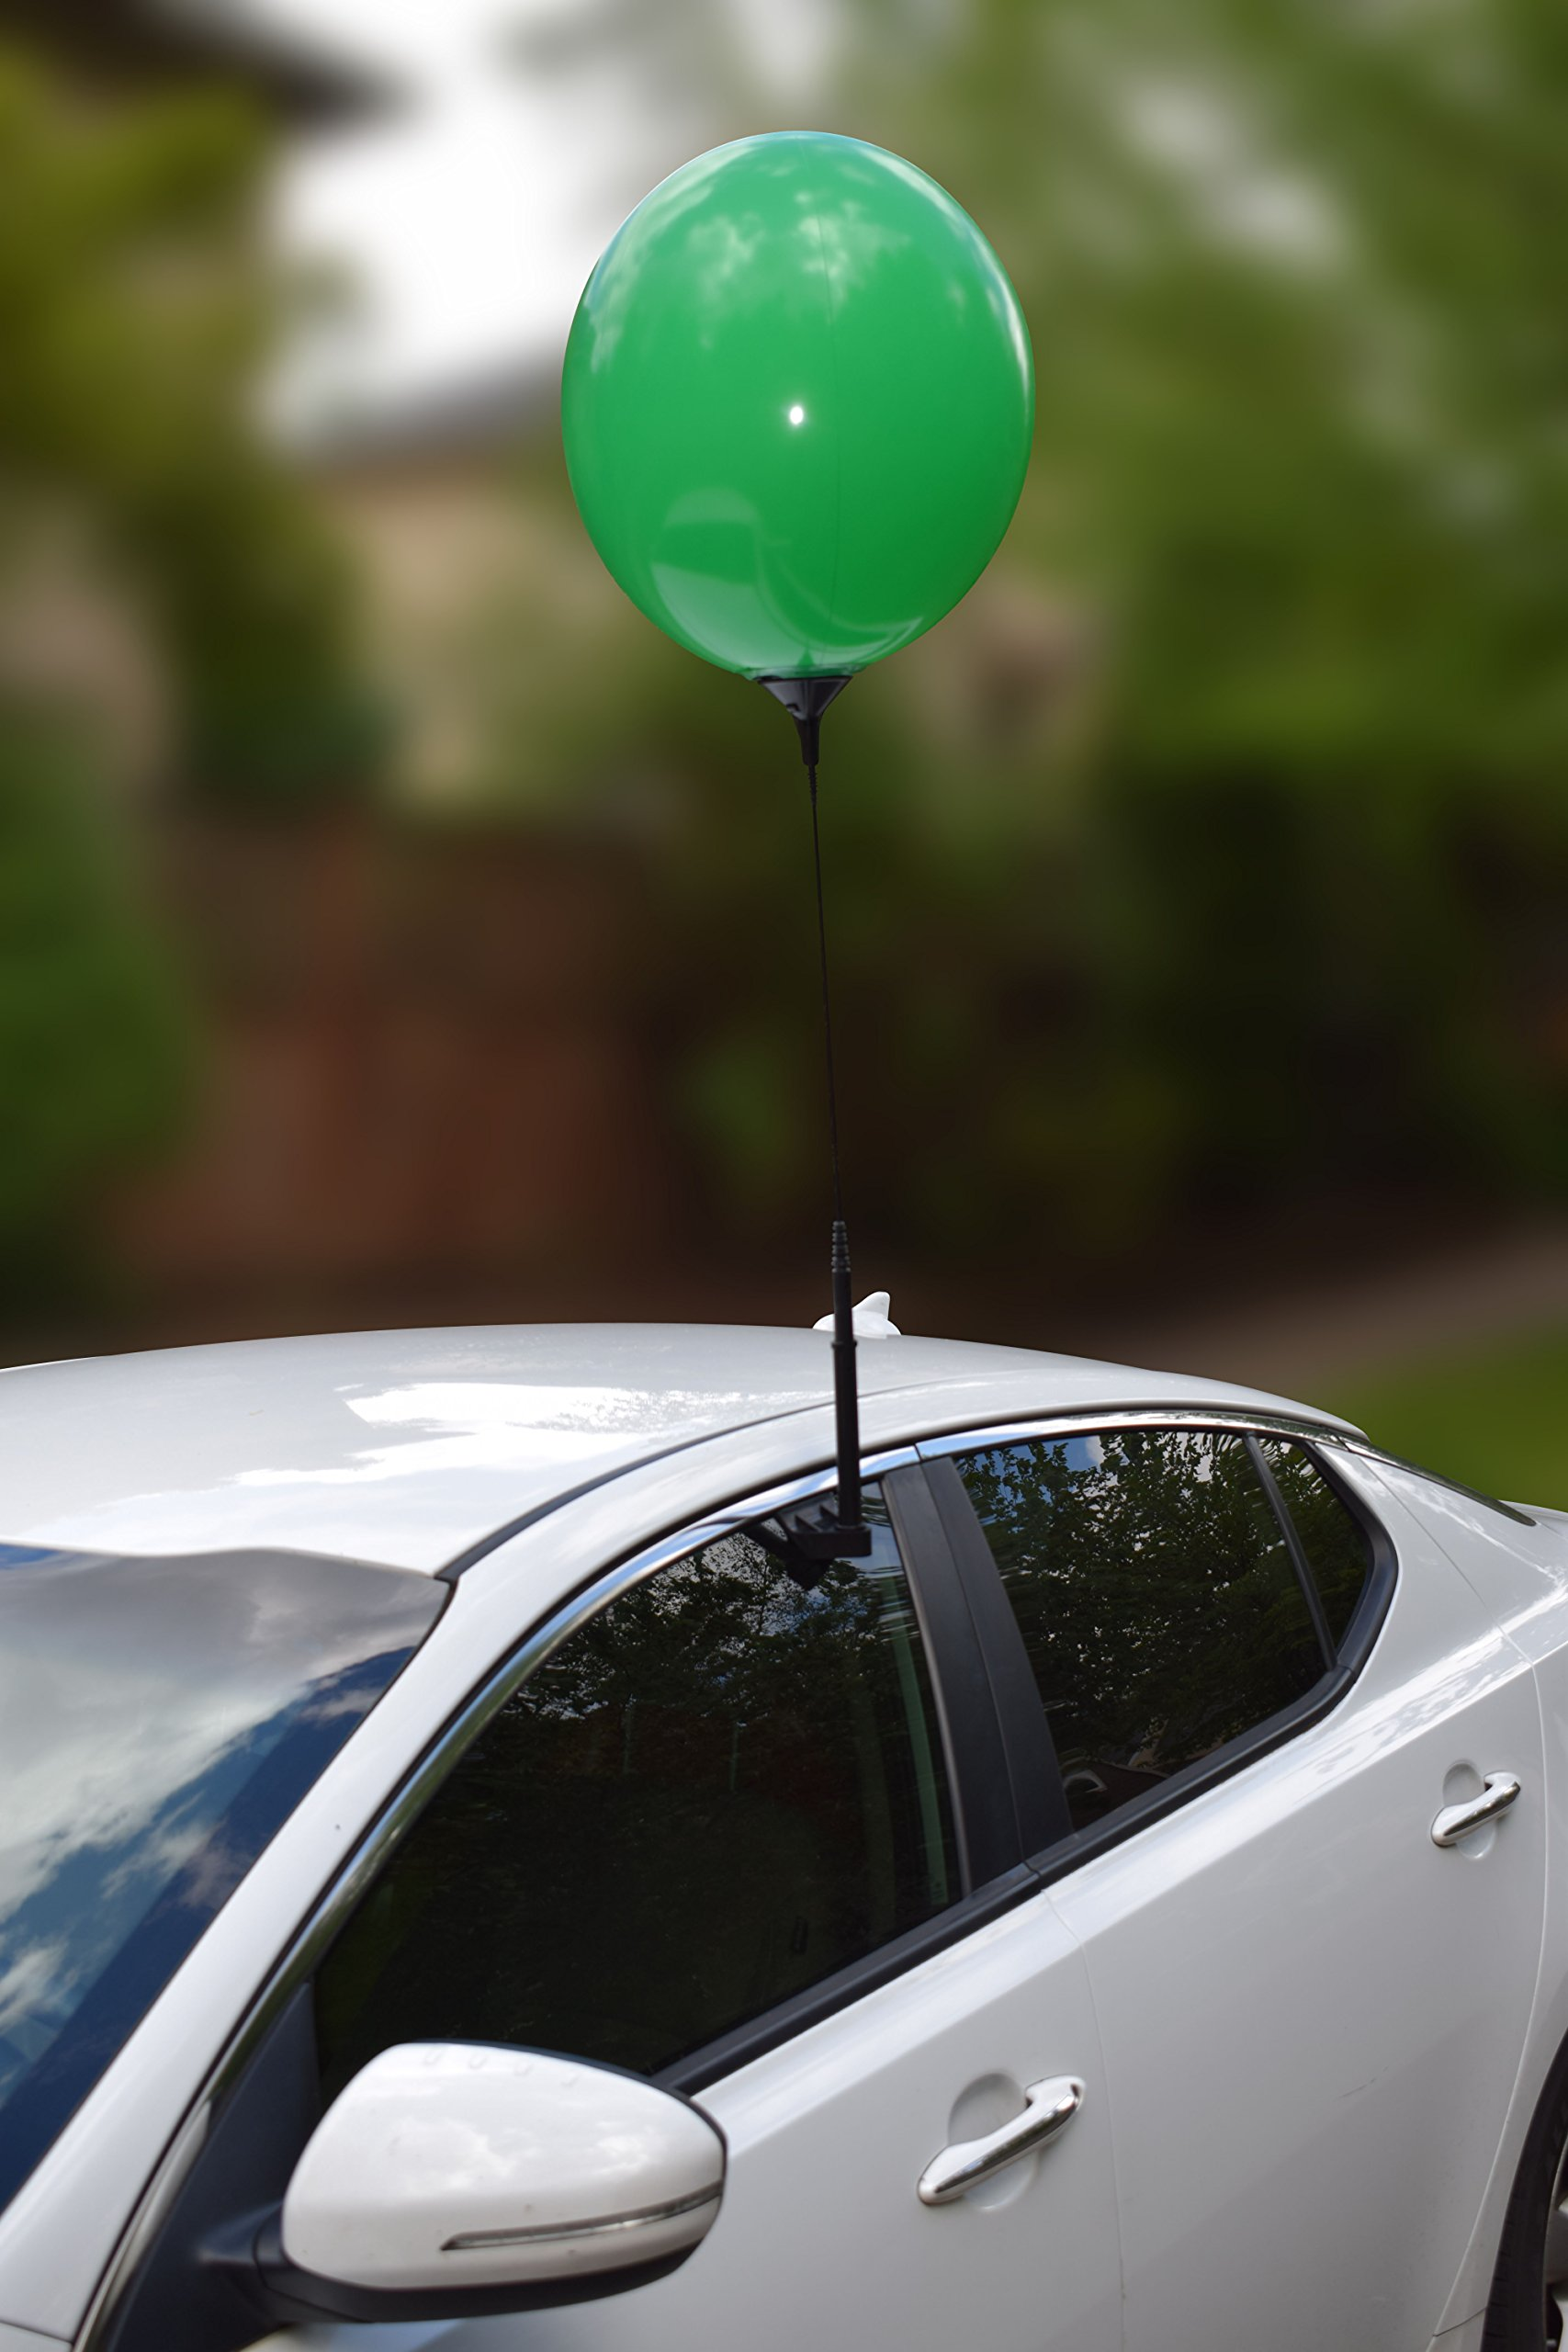 Reusable Balloon Window Kit with removable clip and pole, Car Dealership Advertising, Weatherproof Vinyl (Green)